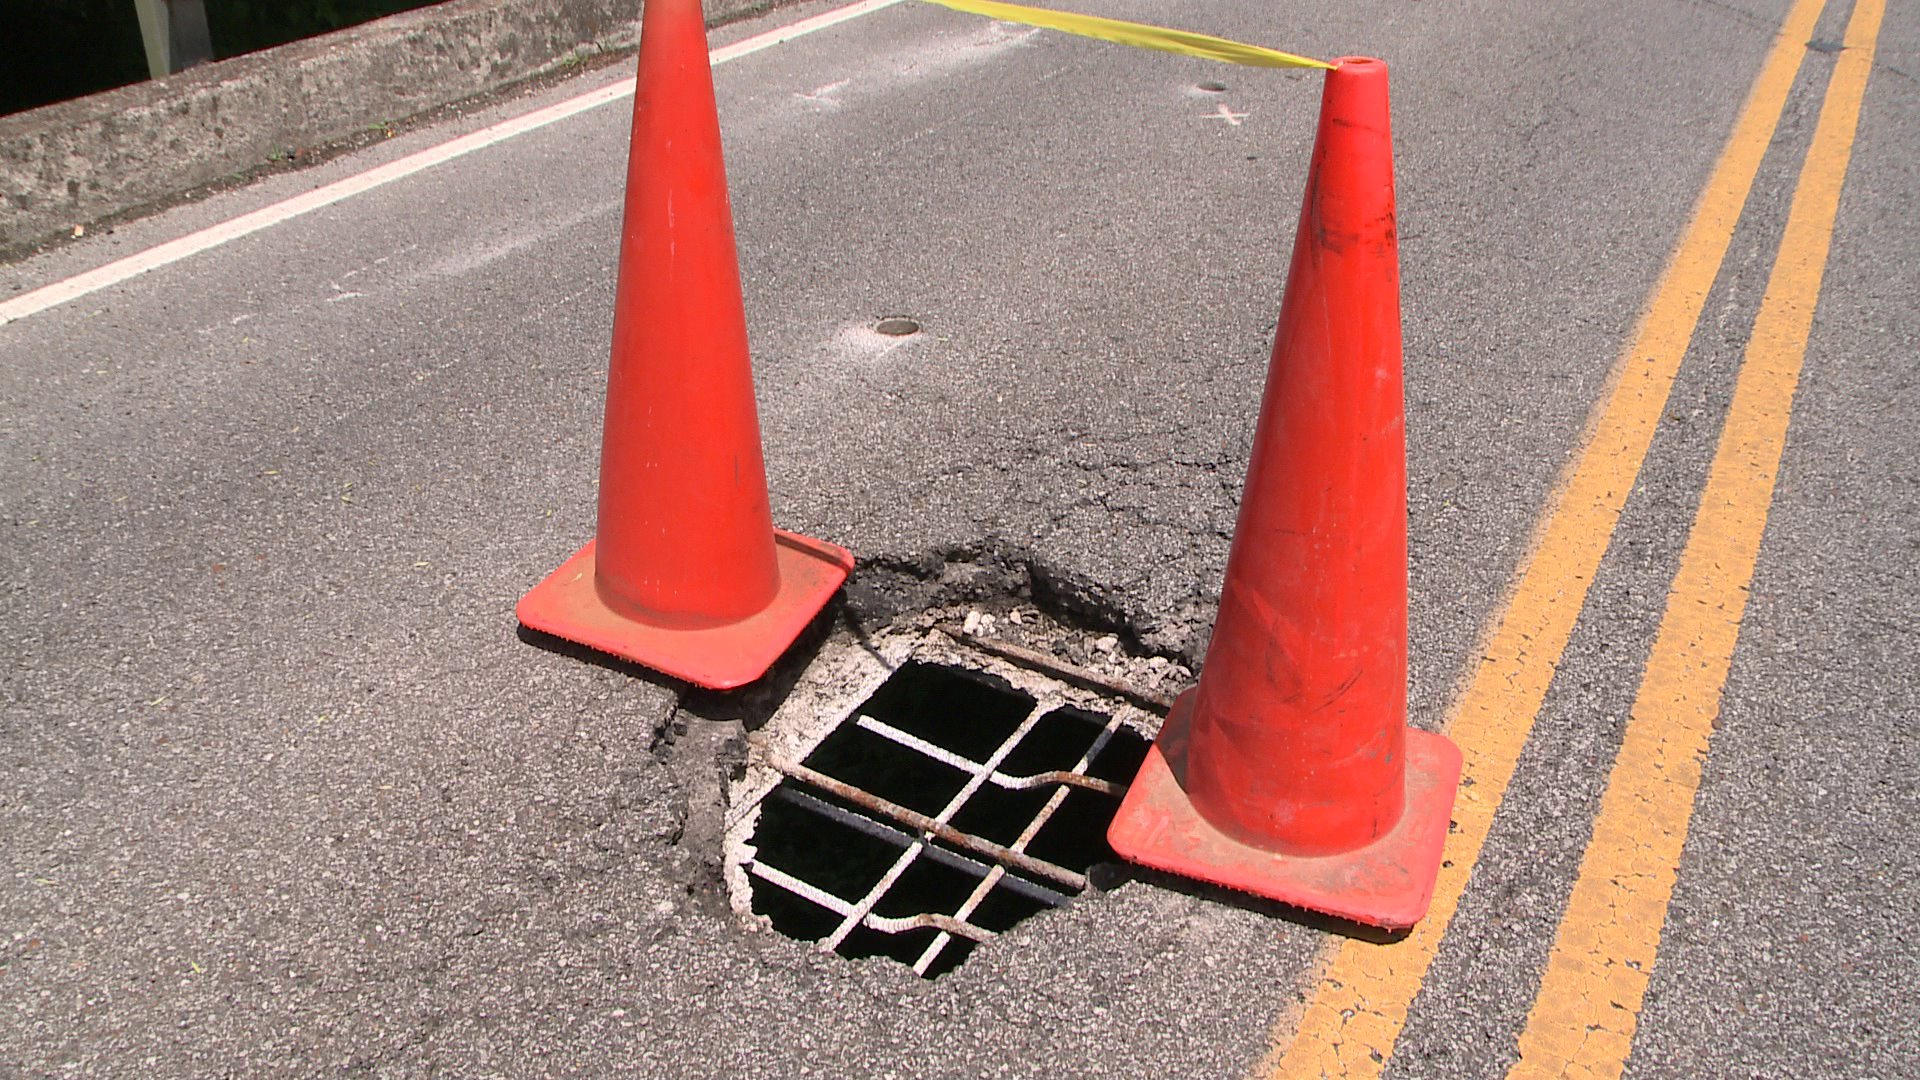 Here's why -- there's a hole in the road over the bridge. (Photo: WHNT News 19)